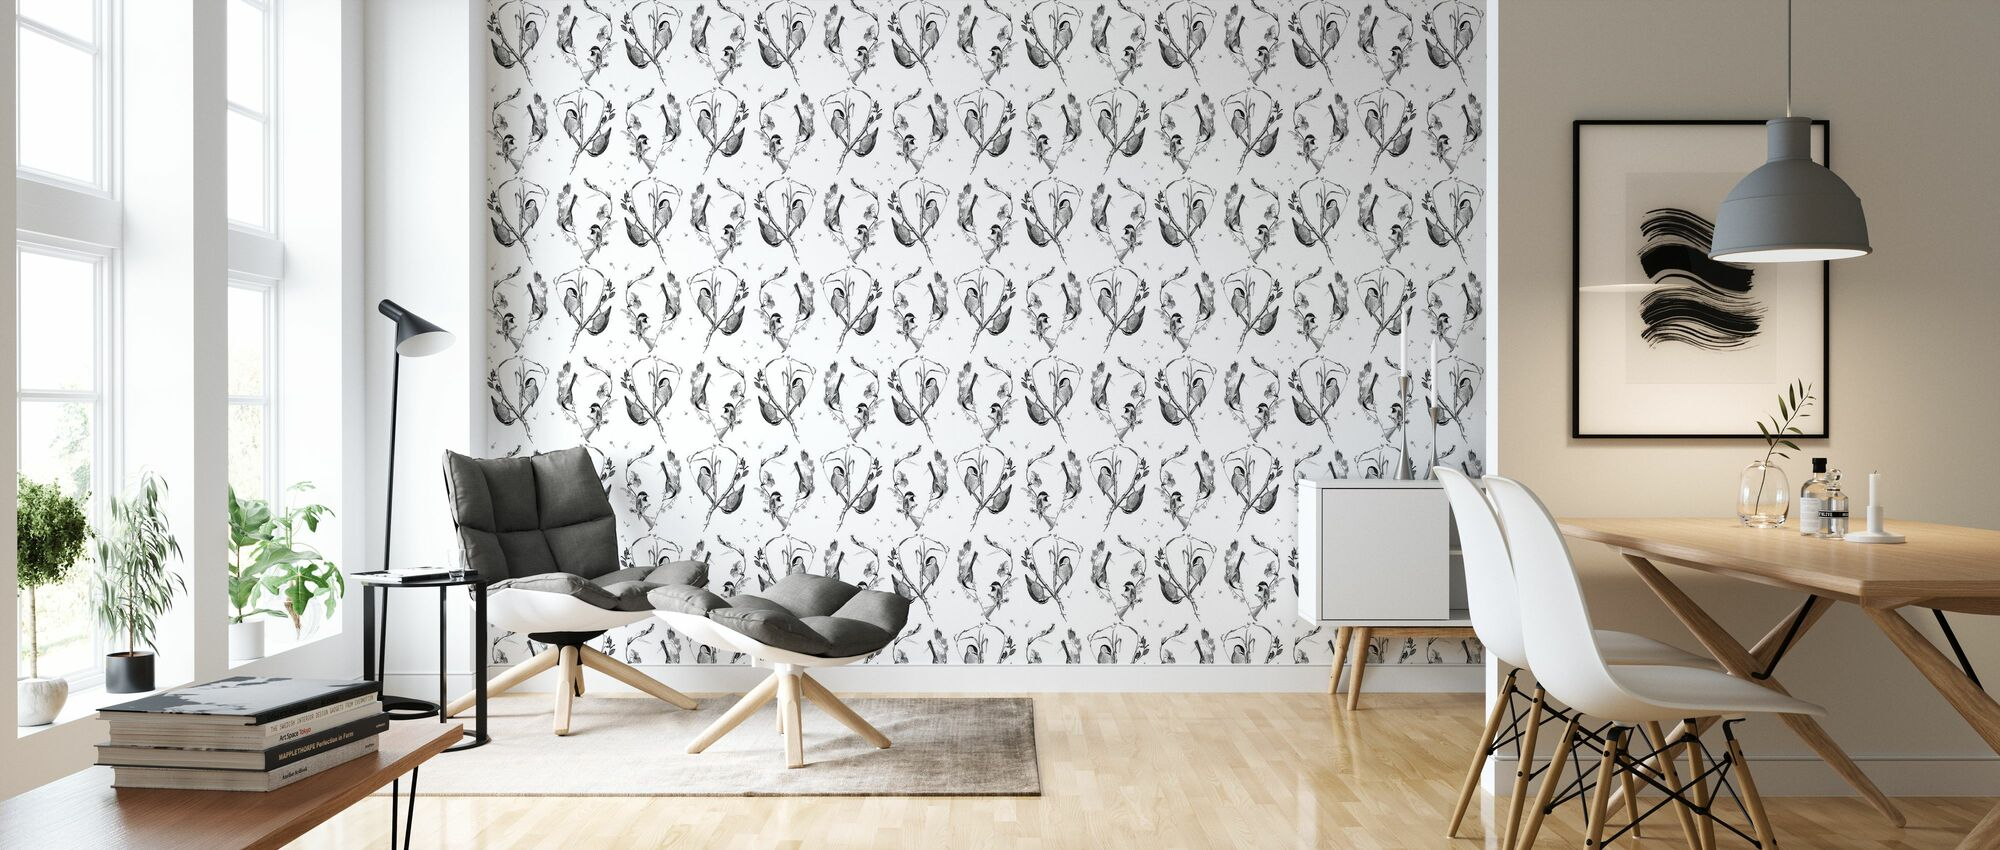 Cuckoo's Nest - Wallpaper - Living Room